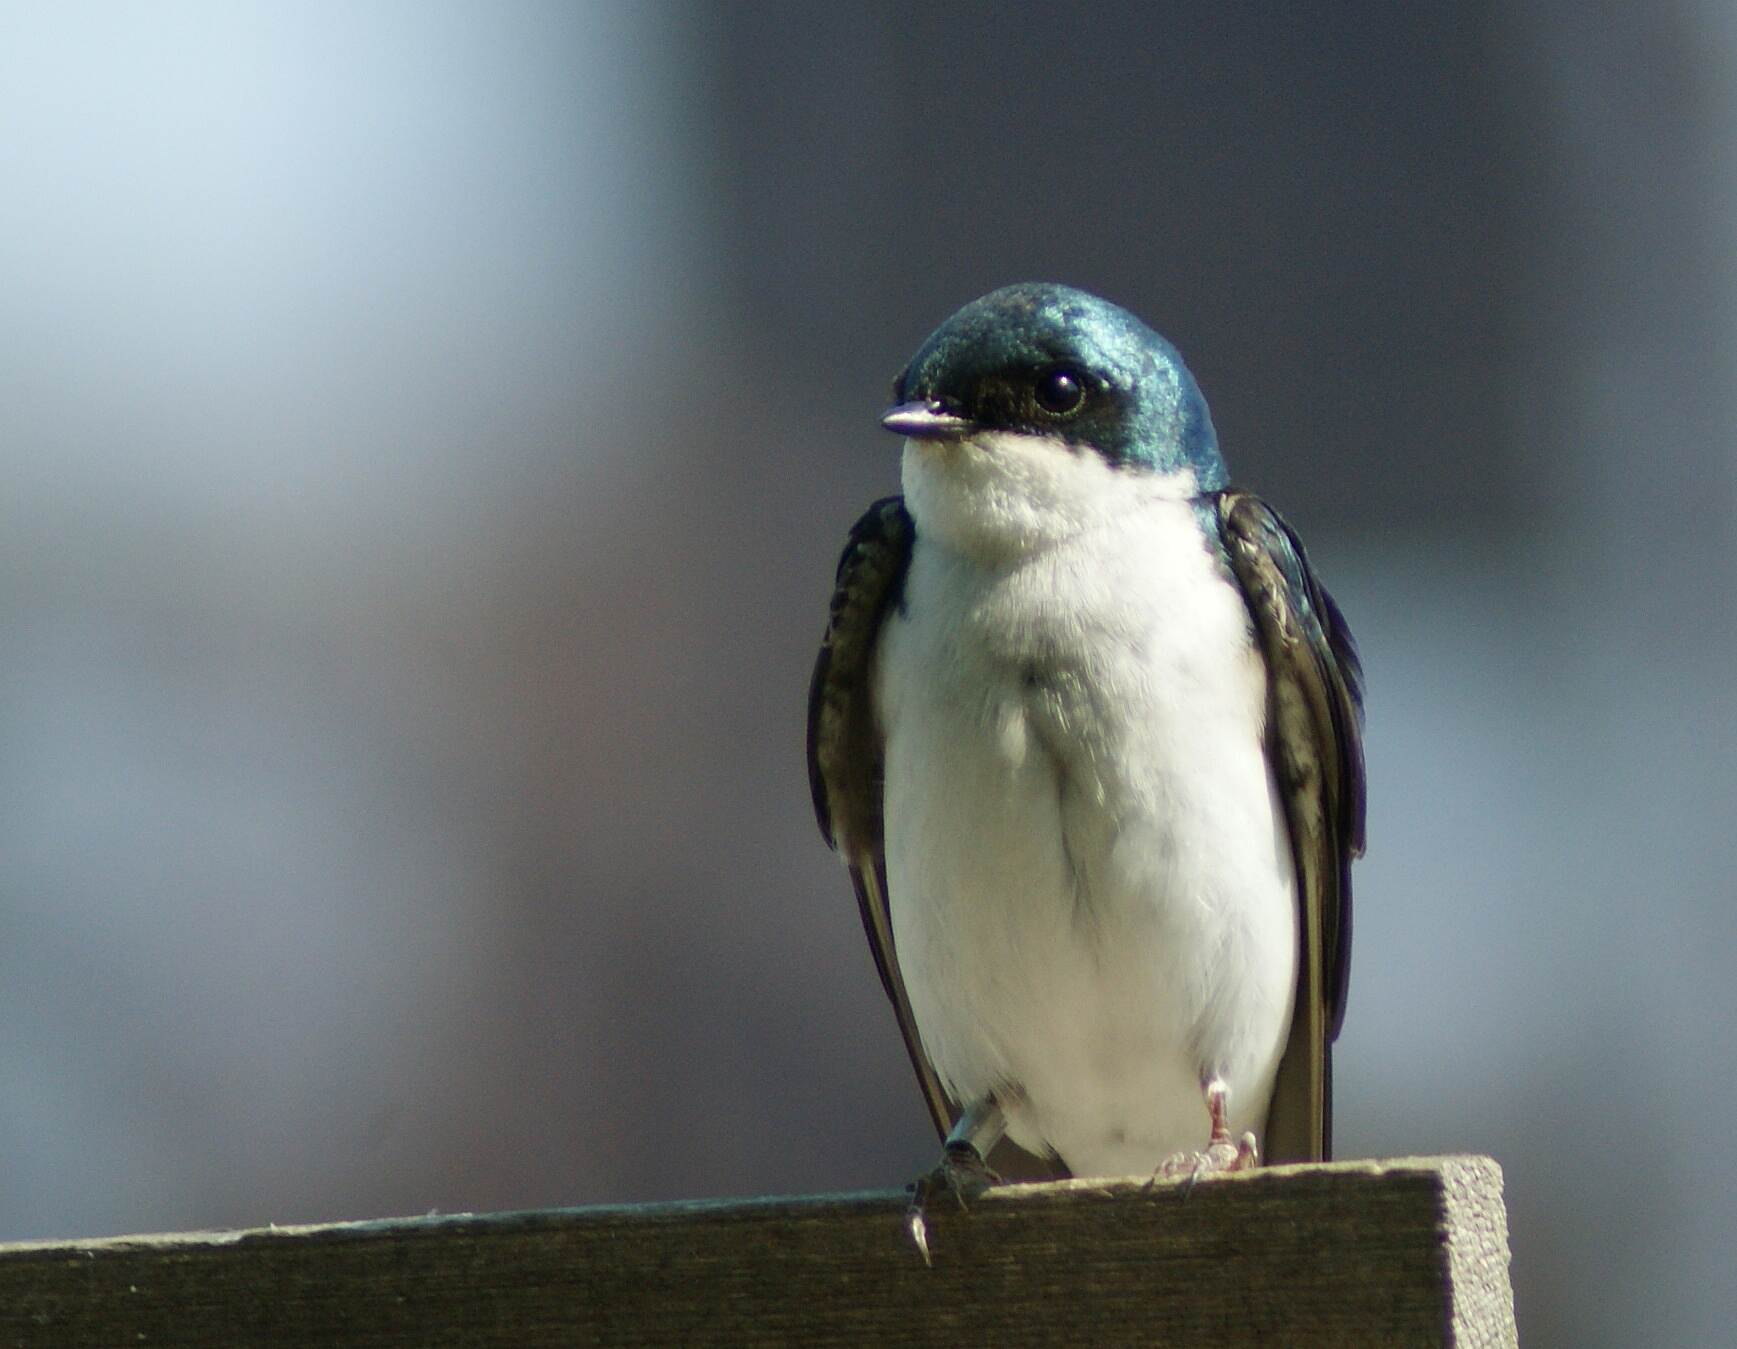 Chattanooga Riverwalk (Tennessee Riverpark) Tree Swallow with Ankle Band Tree Swallow with Ankle Band